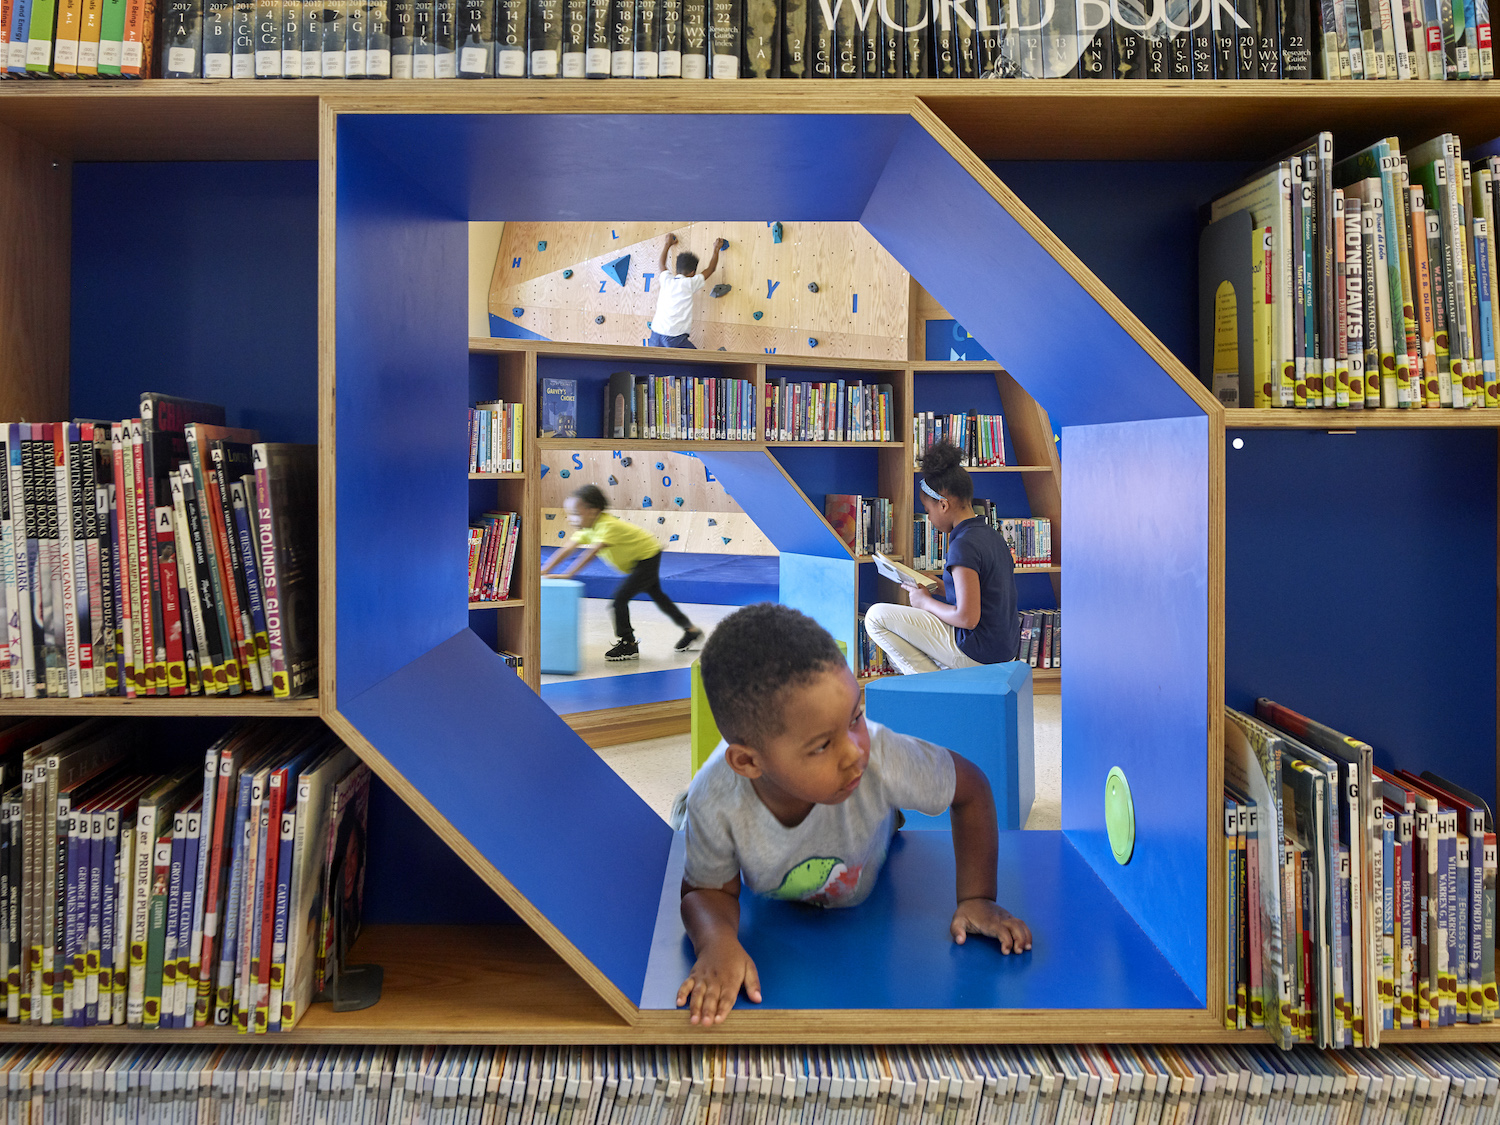 Child crawls through a play area built into bookshelves at branch of the Free Library of Philadelphia